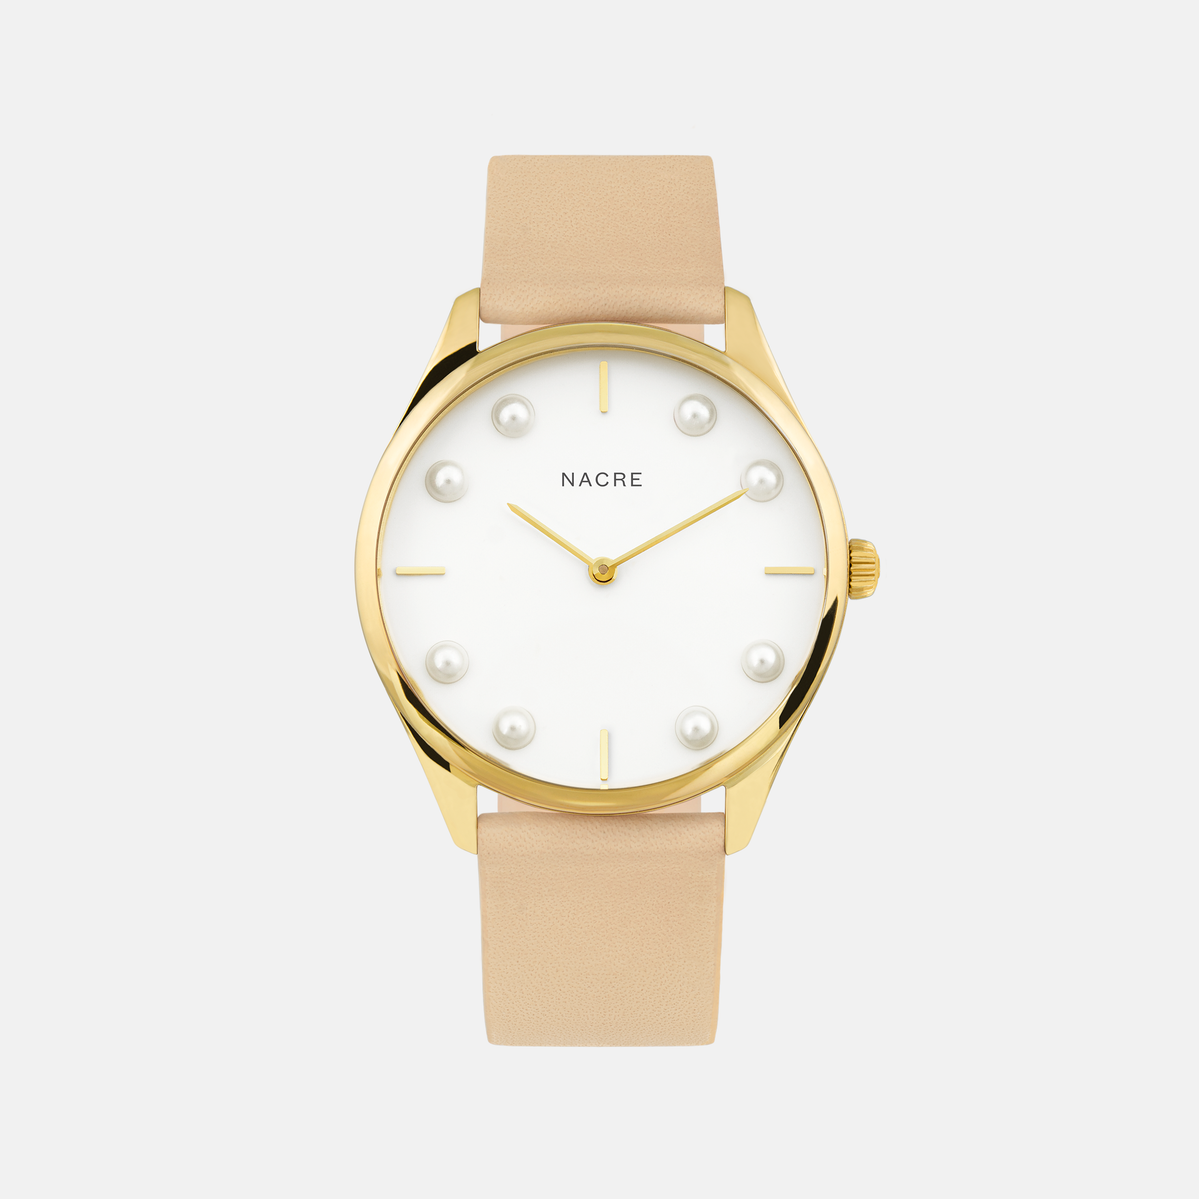 Lune 8 - Gold and White - Navy Leather